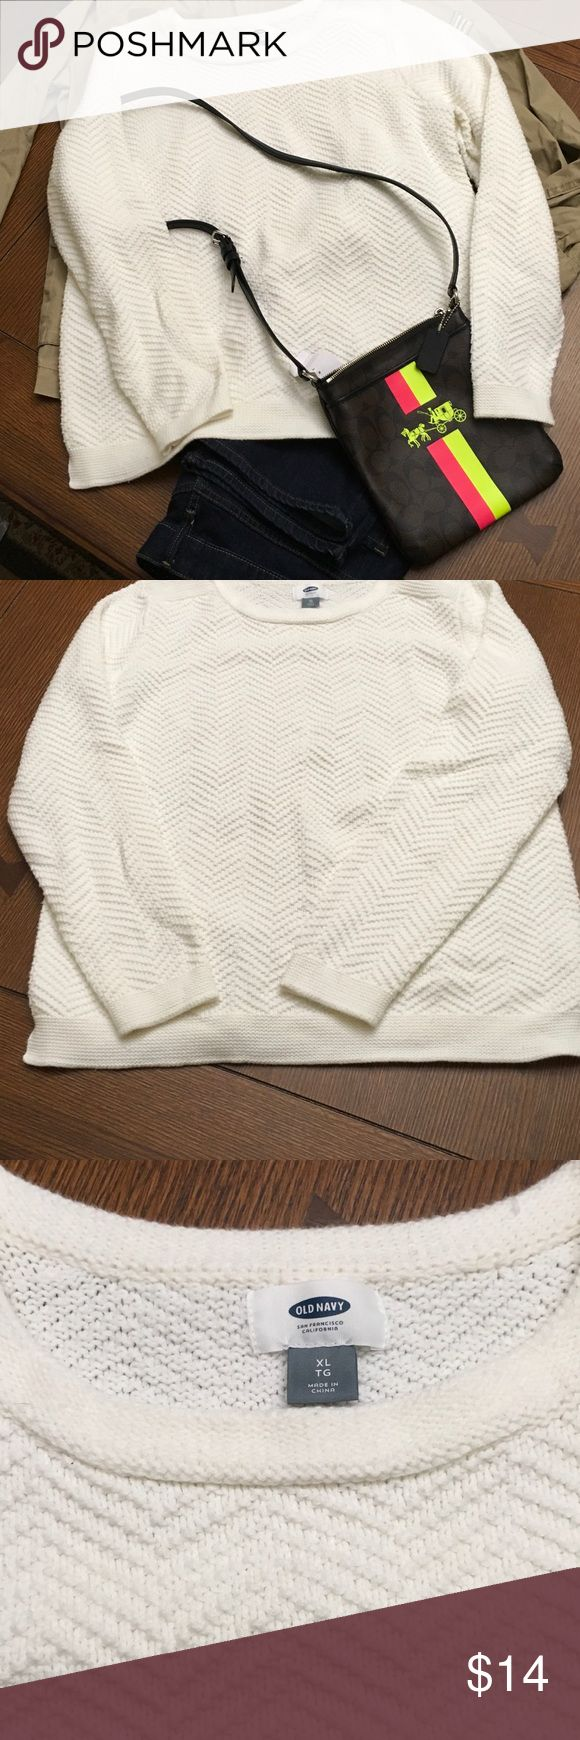 Great Basic Winter Cream Old Navy Sweater Great Basic Winter Cream Old Navy Sweater. Use is as a blank canvas for all your great scarves and jackets. Old Navy Sweaters Crew & Scoop Necks